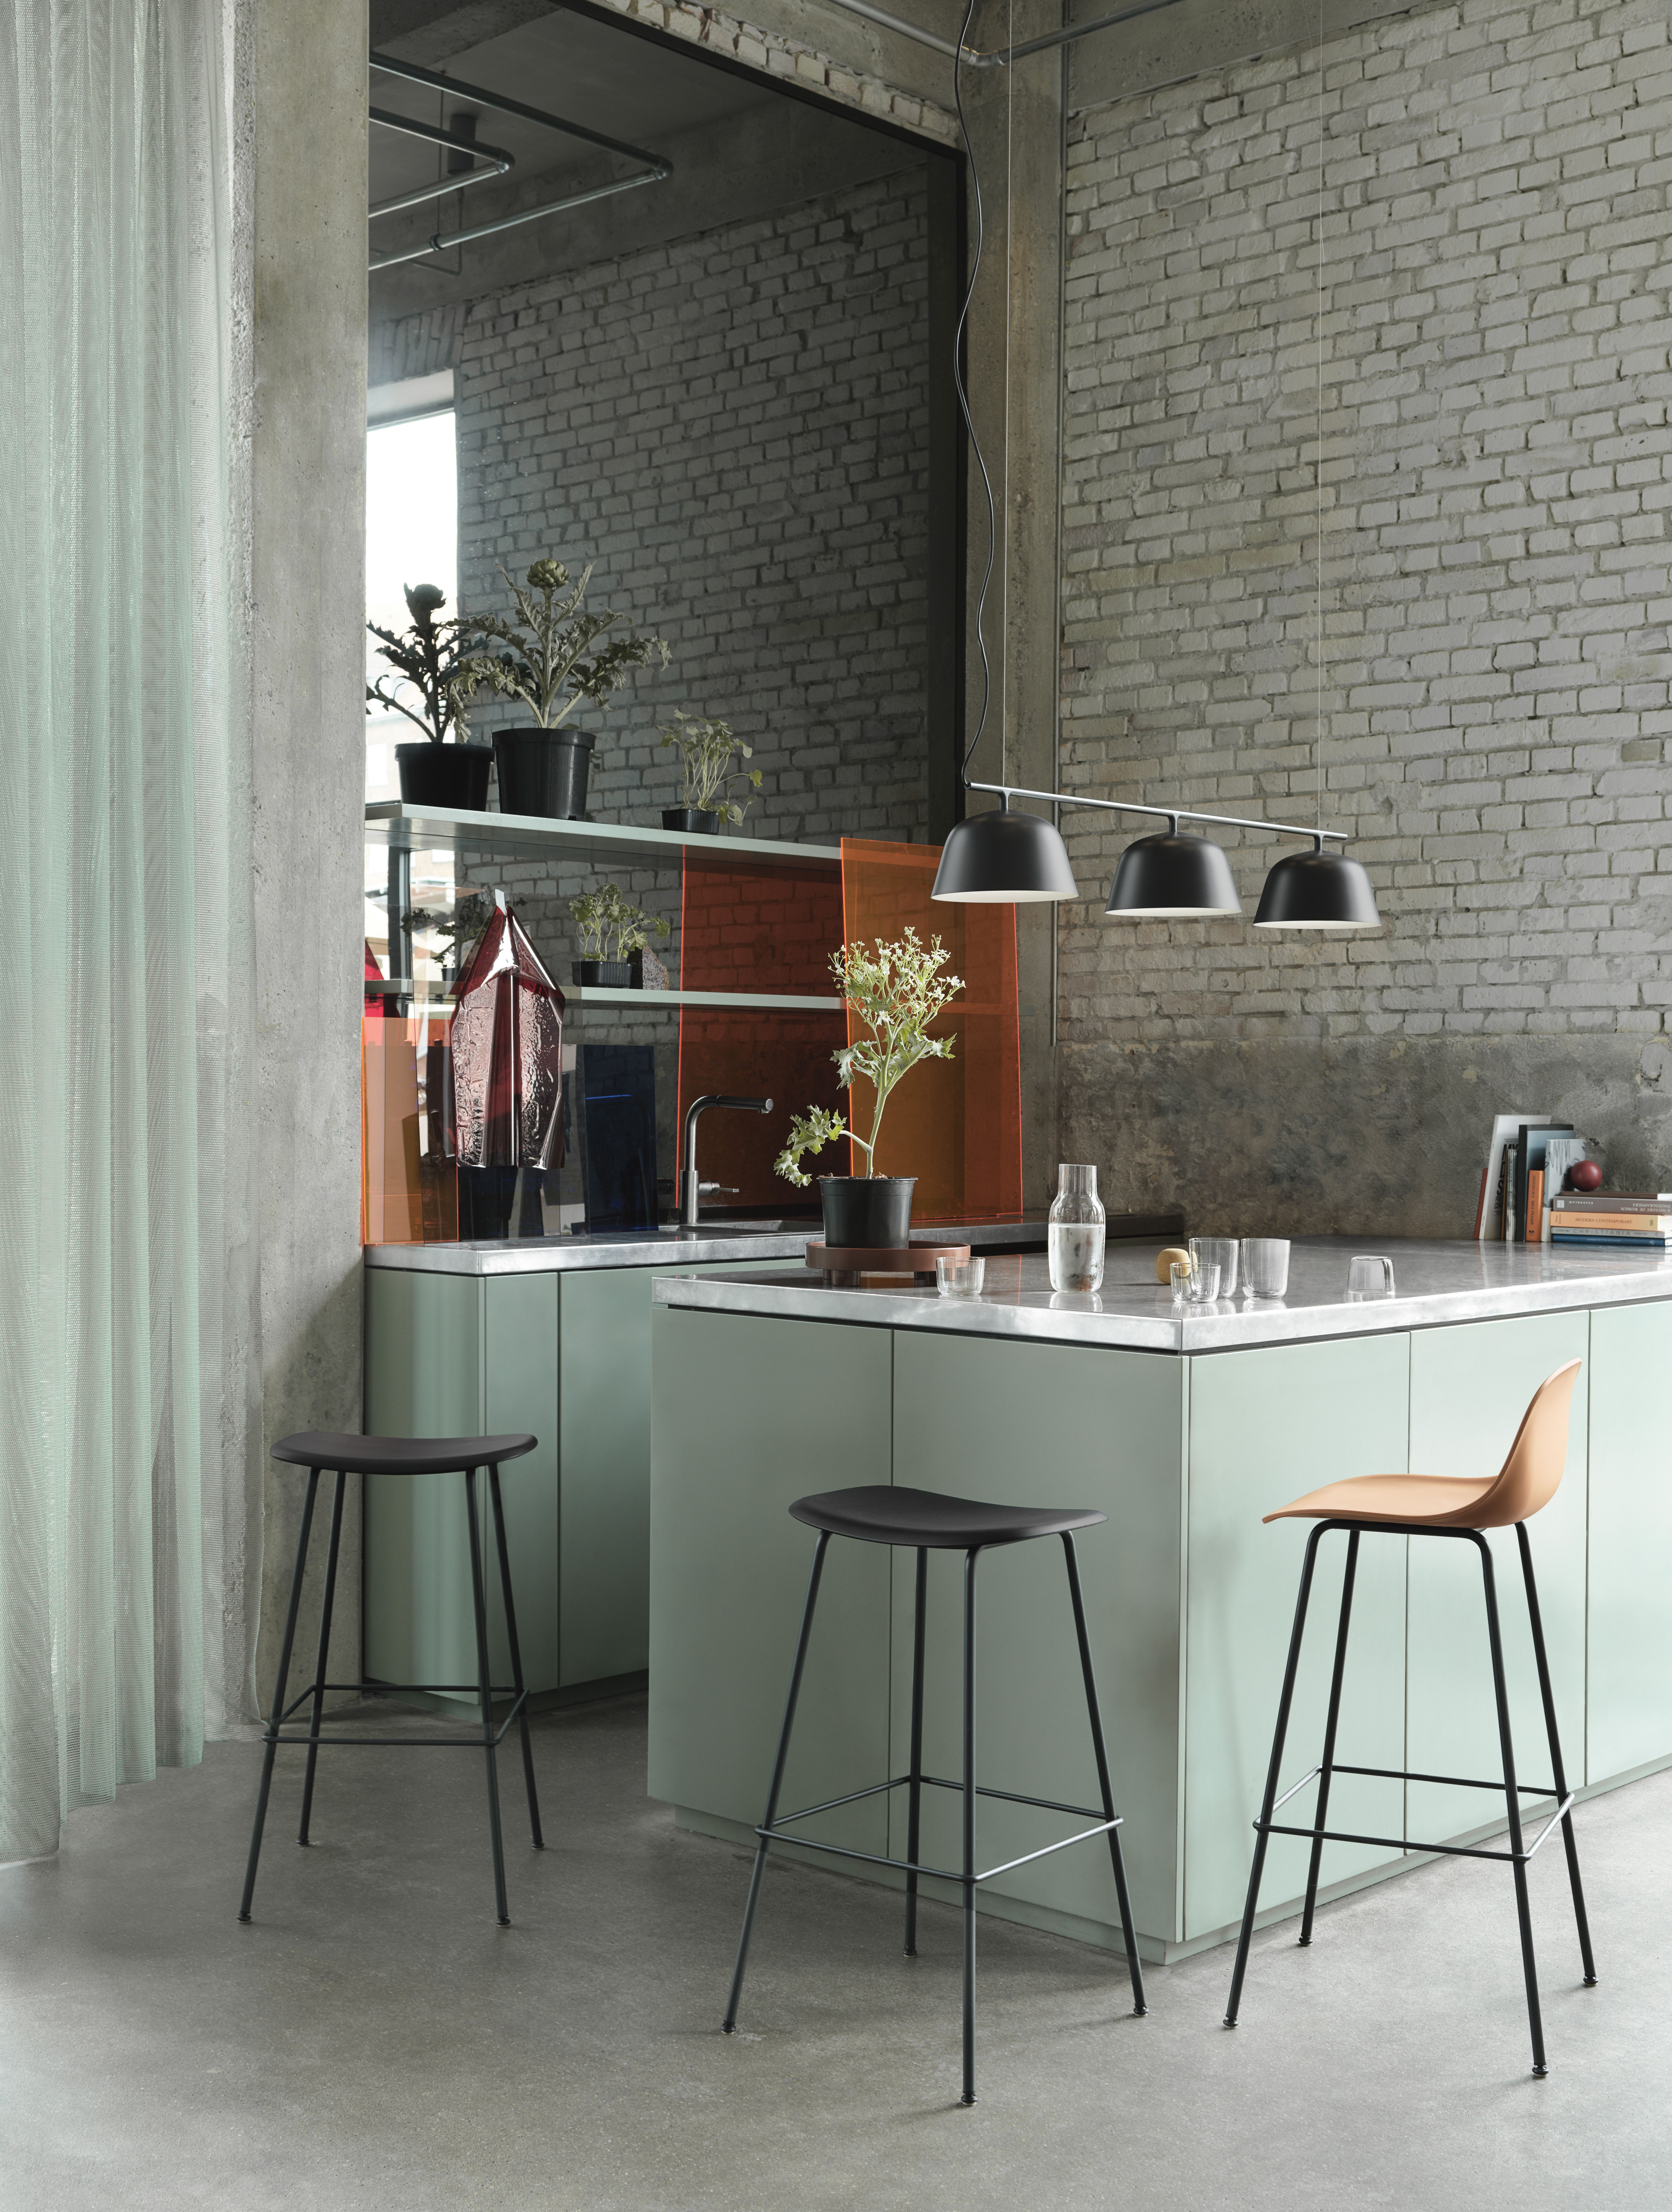 Scandinavian kitchen settings with the Fiber Bar Stool and Ambit